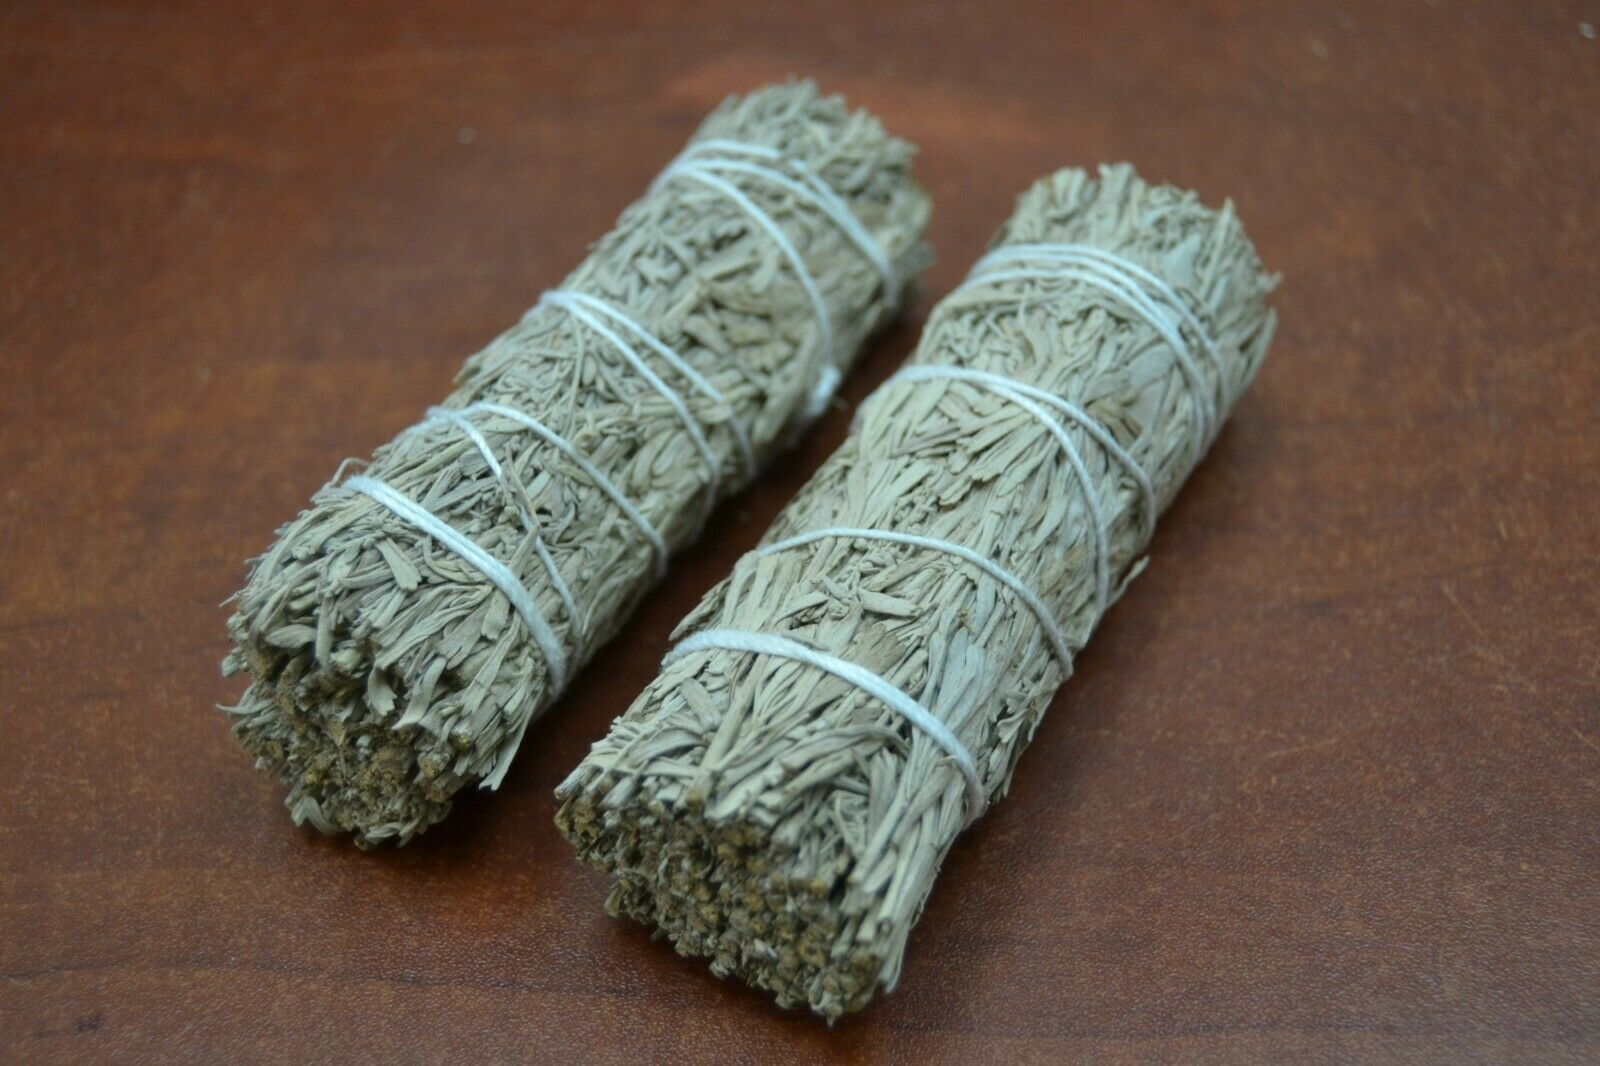 2 Pcs Set Desert Sage Bundle Smudge Incense